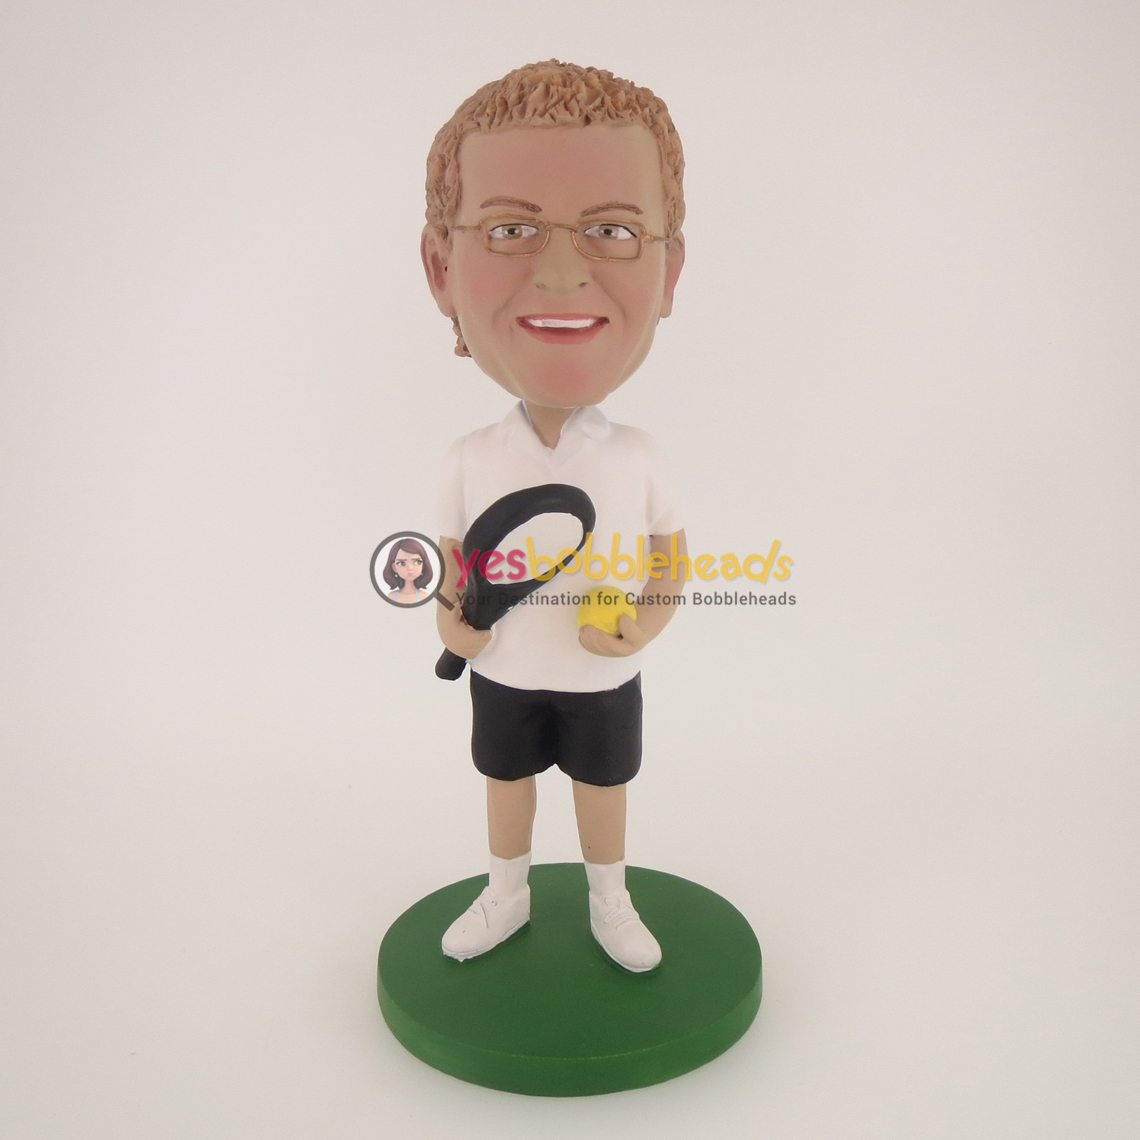 Picture of Custom Bobblehead Doll: White T-Shirt Tennis Player